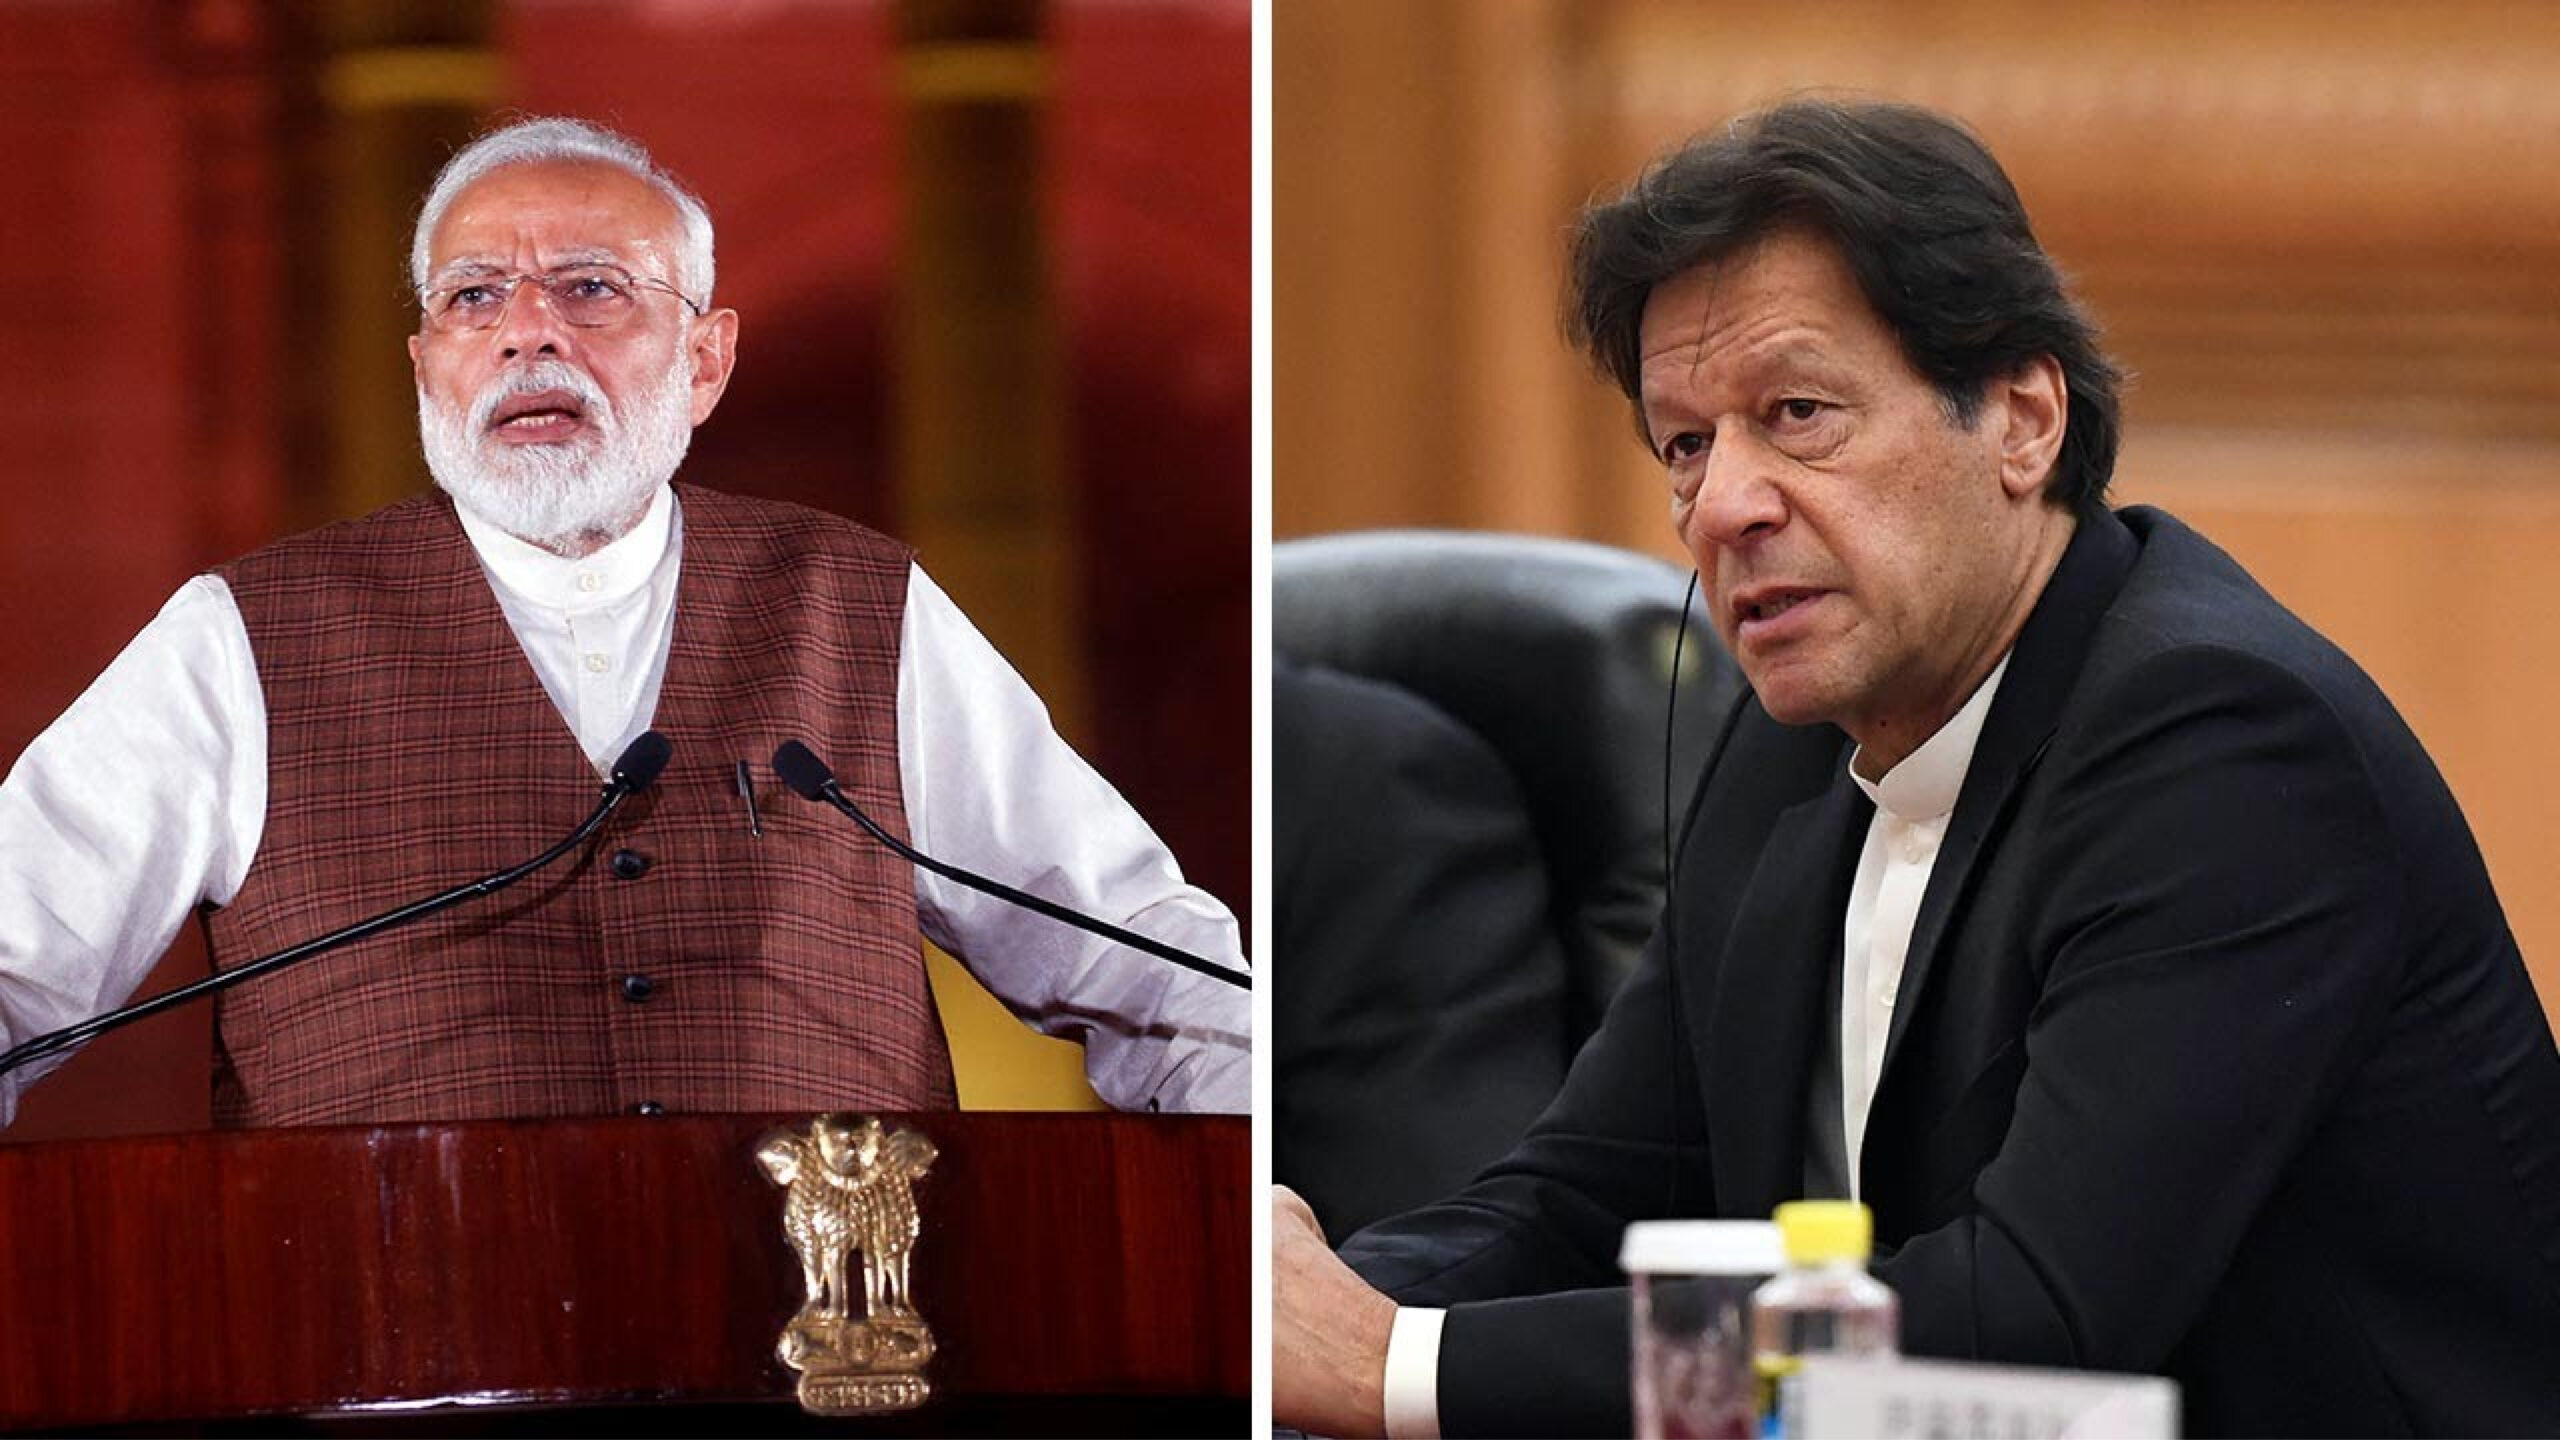 Pakistan wants peace with India: PM Imran in letter to Modi